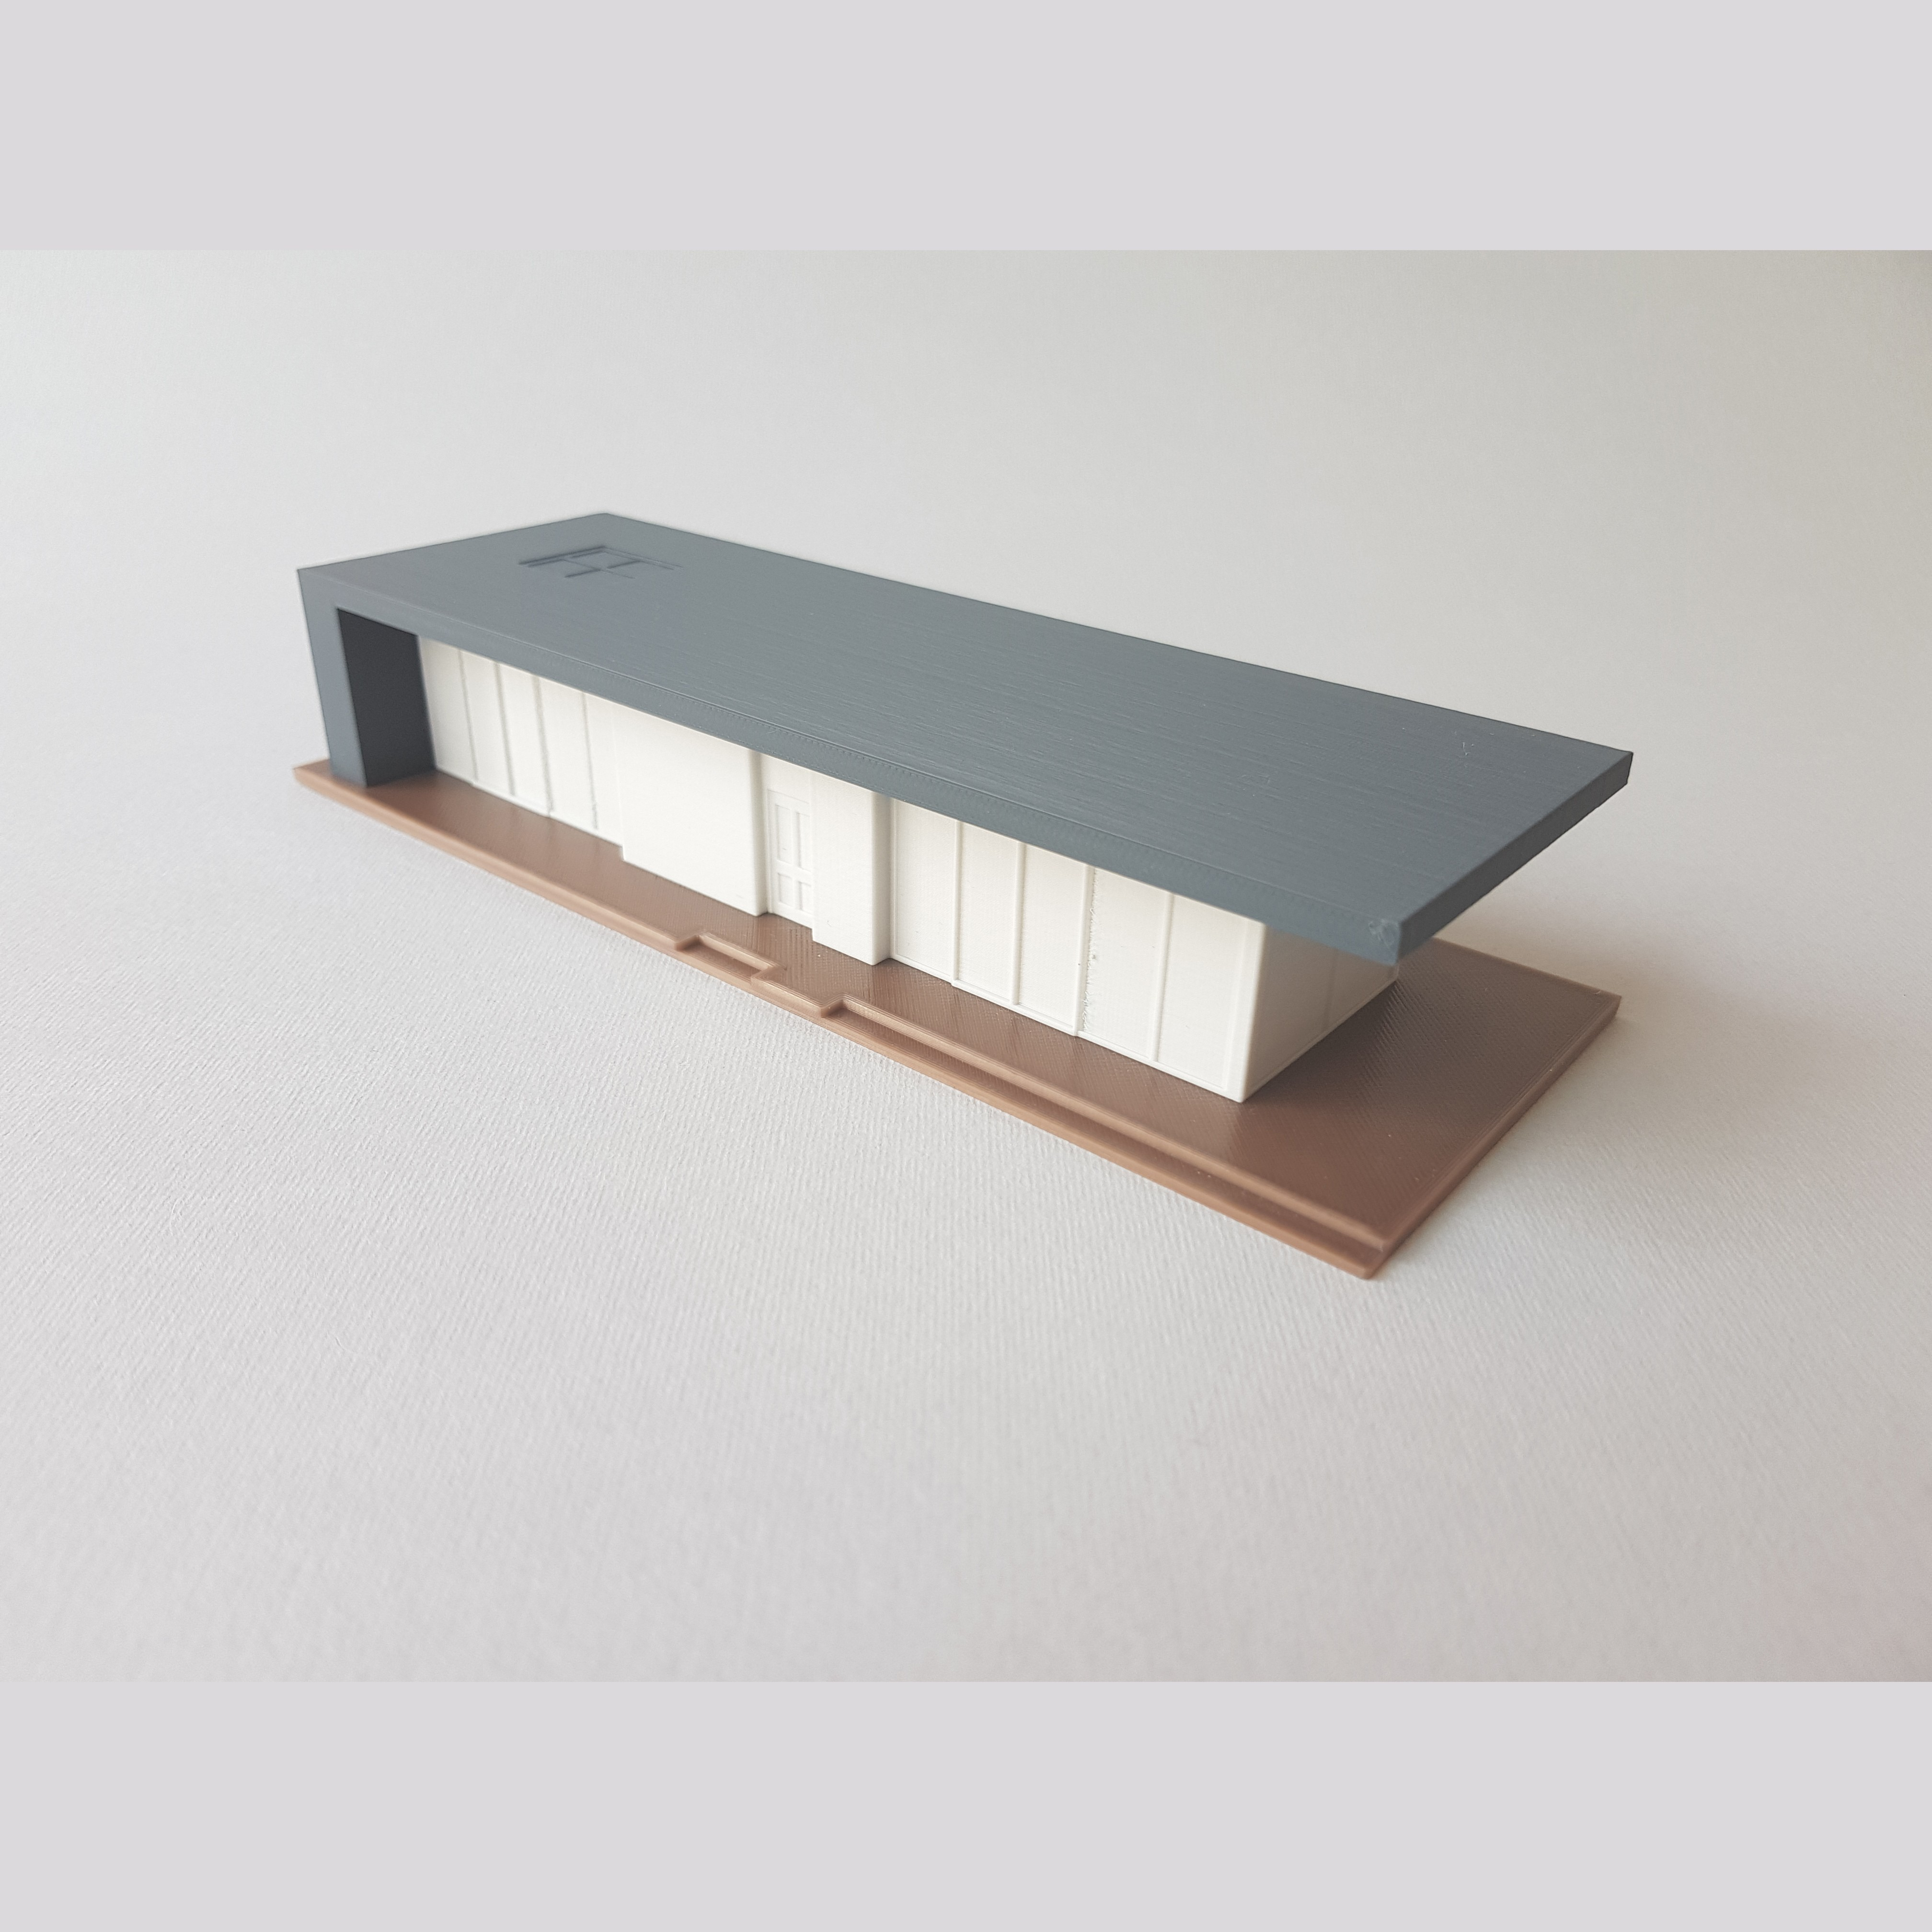 p03.jpg Download STL file Country House • Model to 3D print, ARCH-GRAPHIC